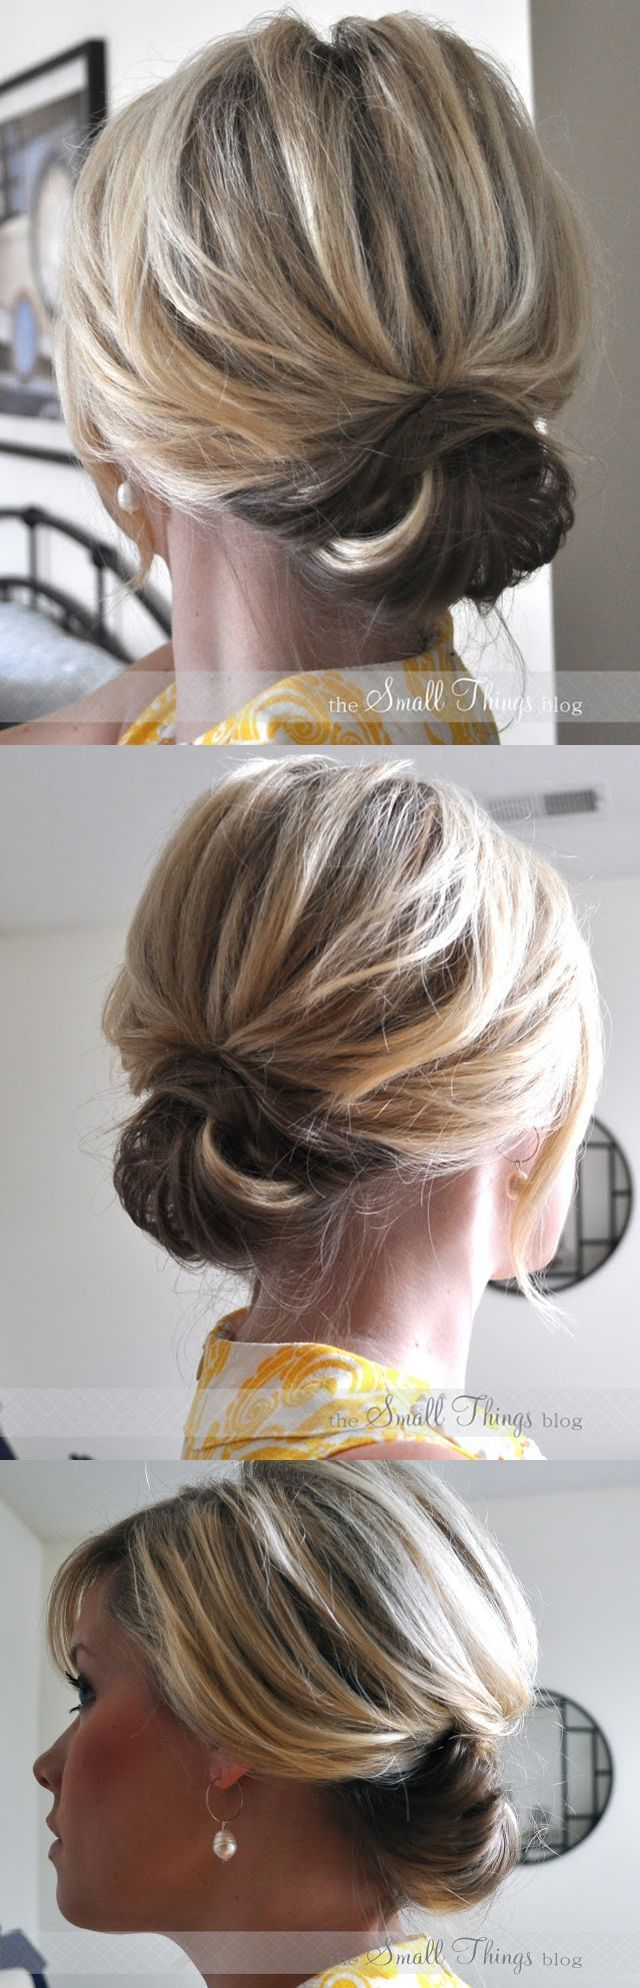 DIY Hairstyle   Chic Up do for Short Hair   Step By Step ...